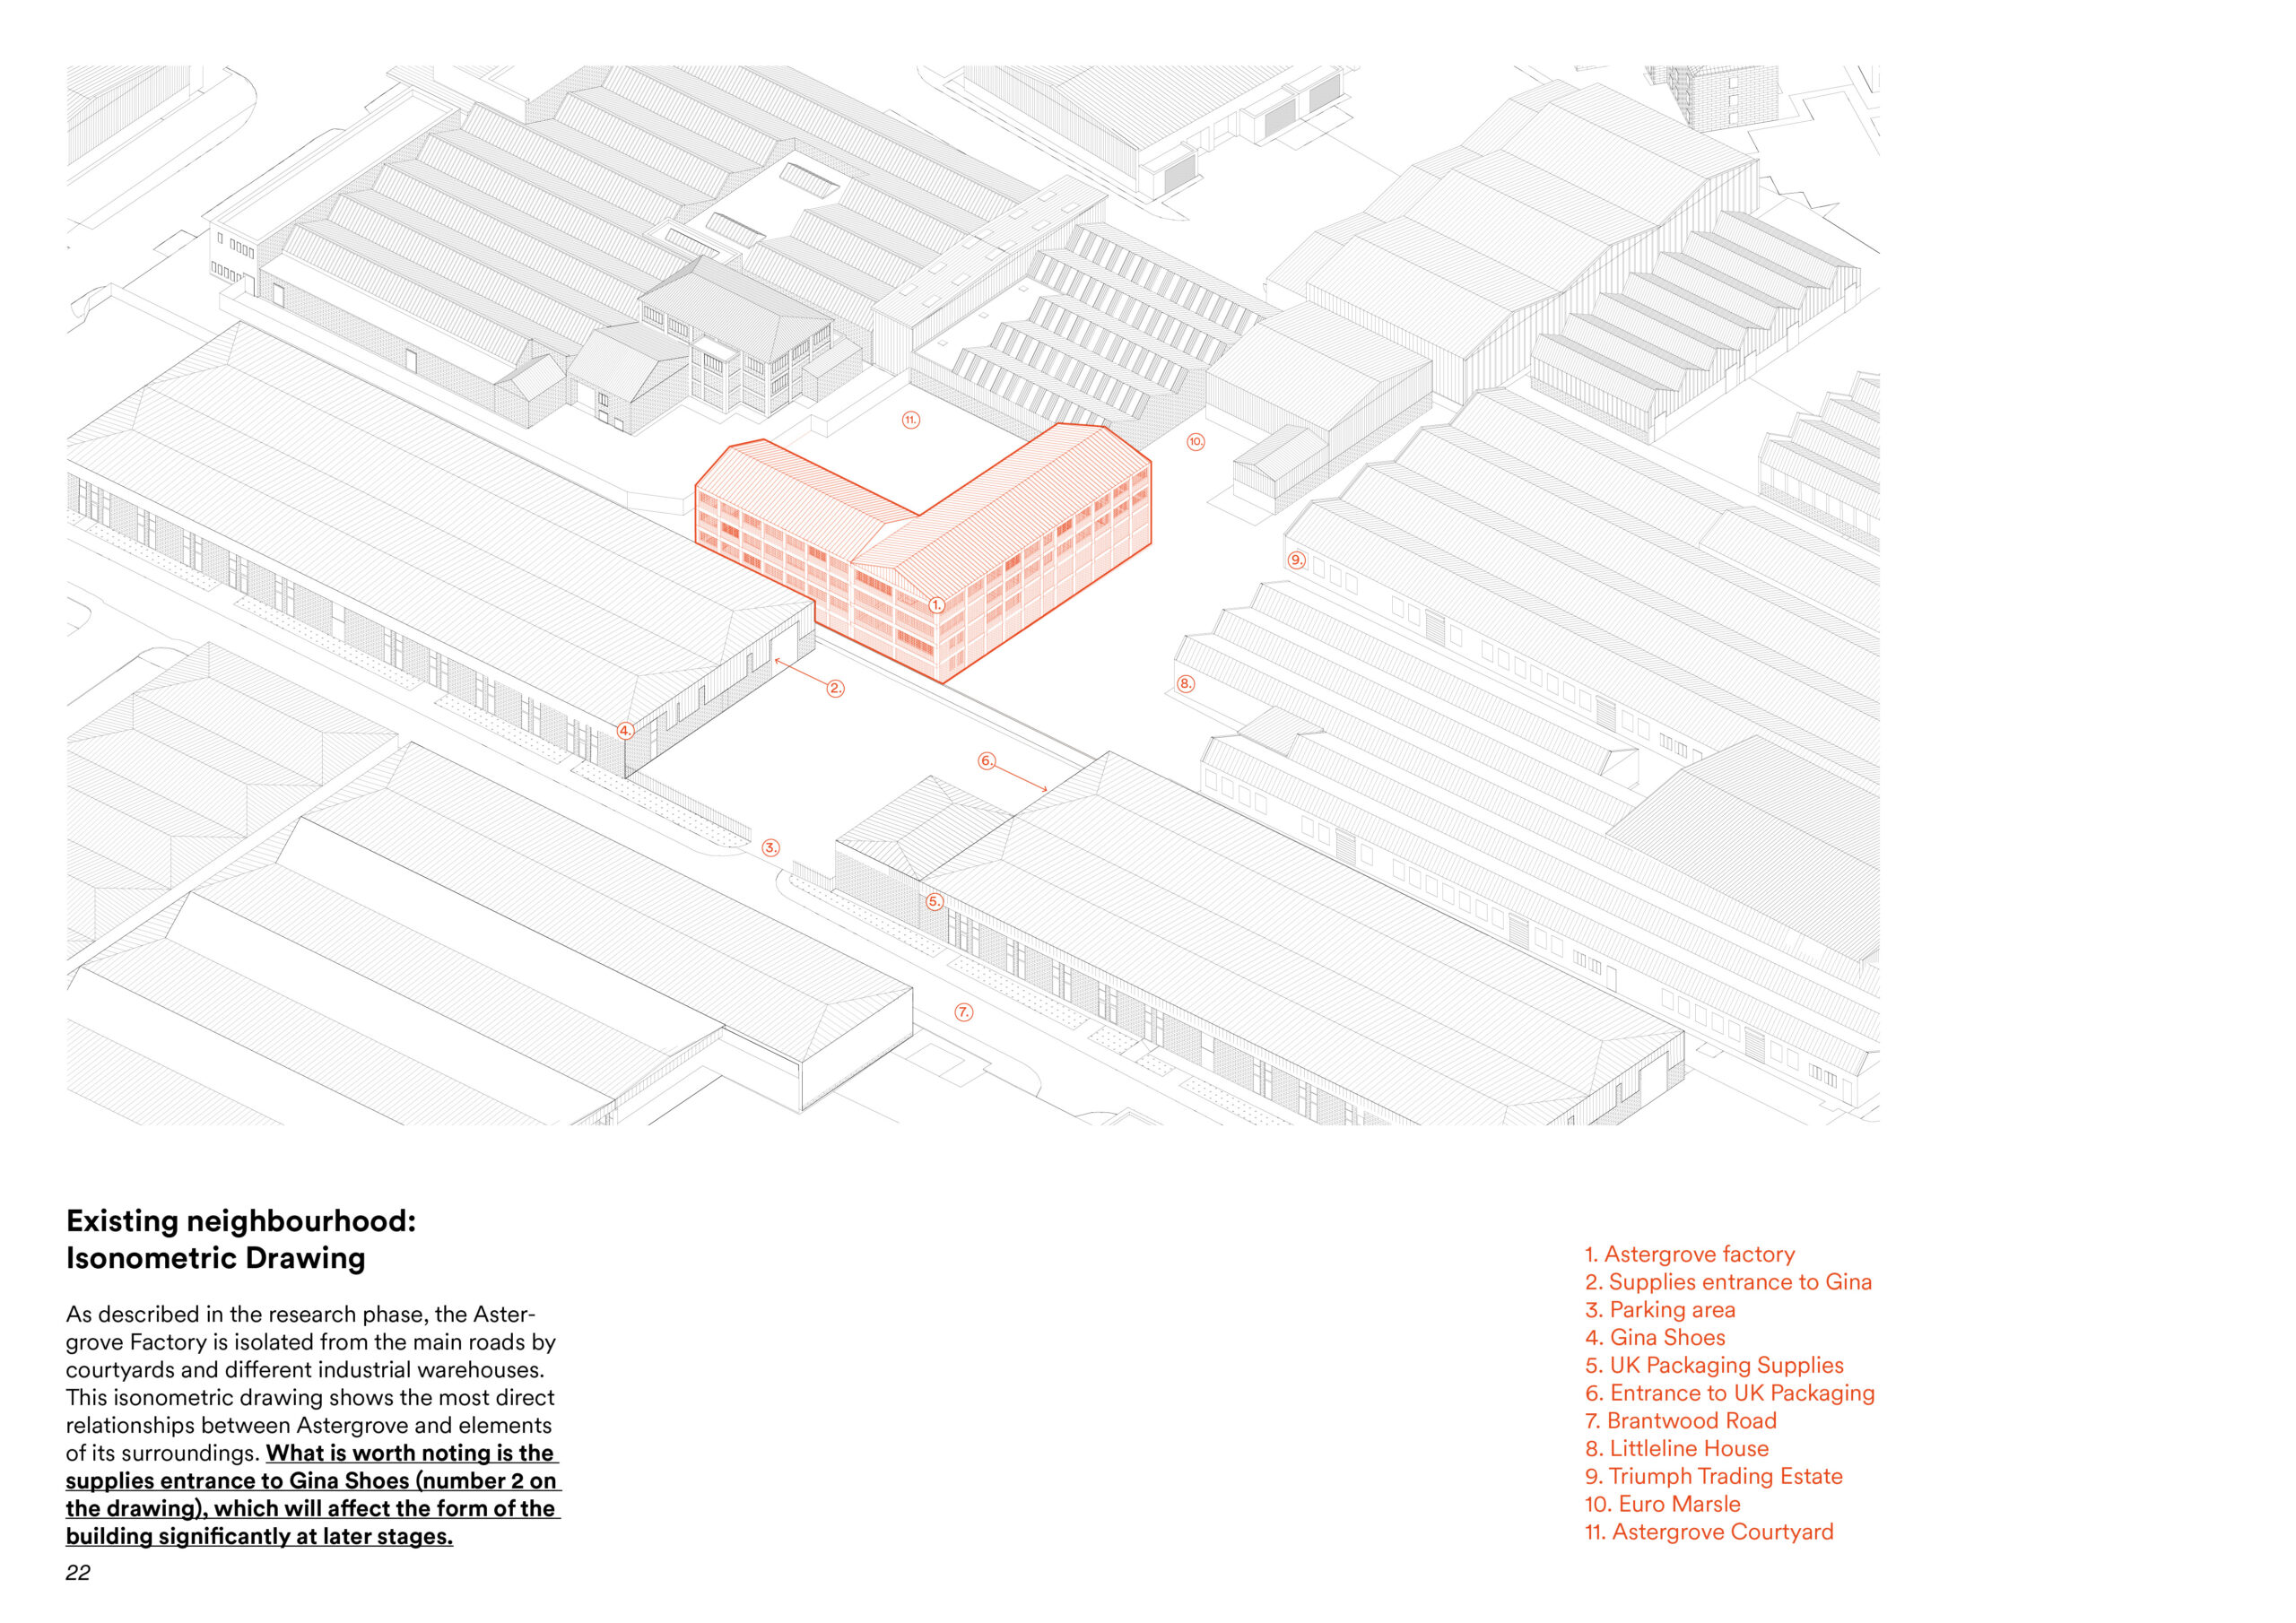 isometric drawing with the original building drawn in orange. the rest of the drawing is cad black and white